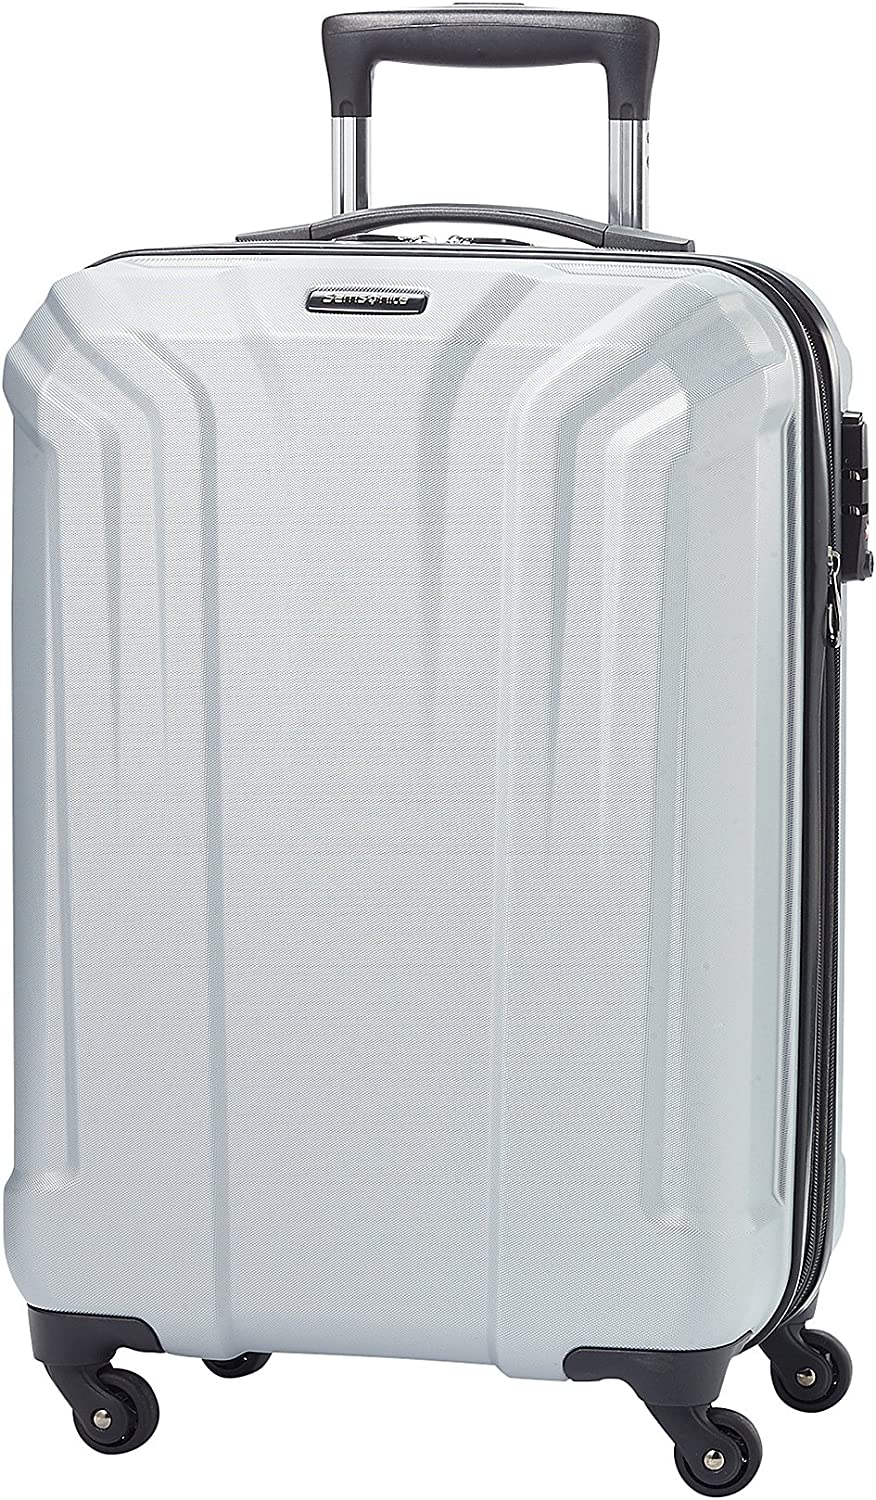 Samsonite OPTO-PC 20 carry-on spinner silver